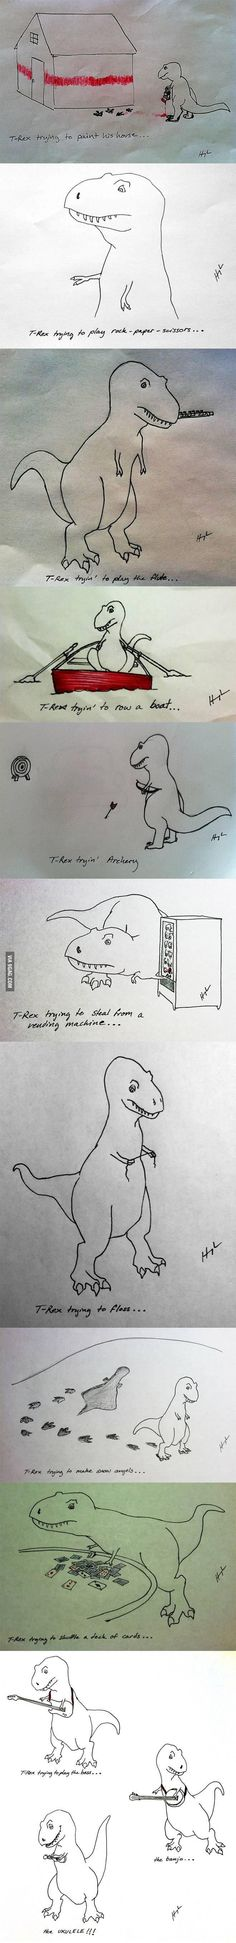 It's a hard life for a T-rex.